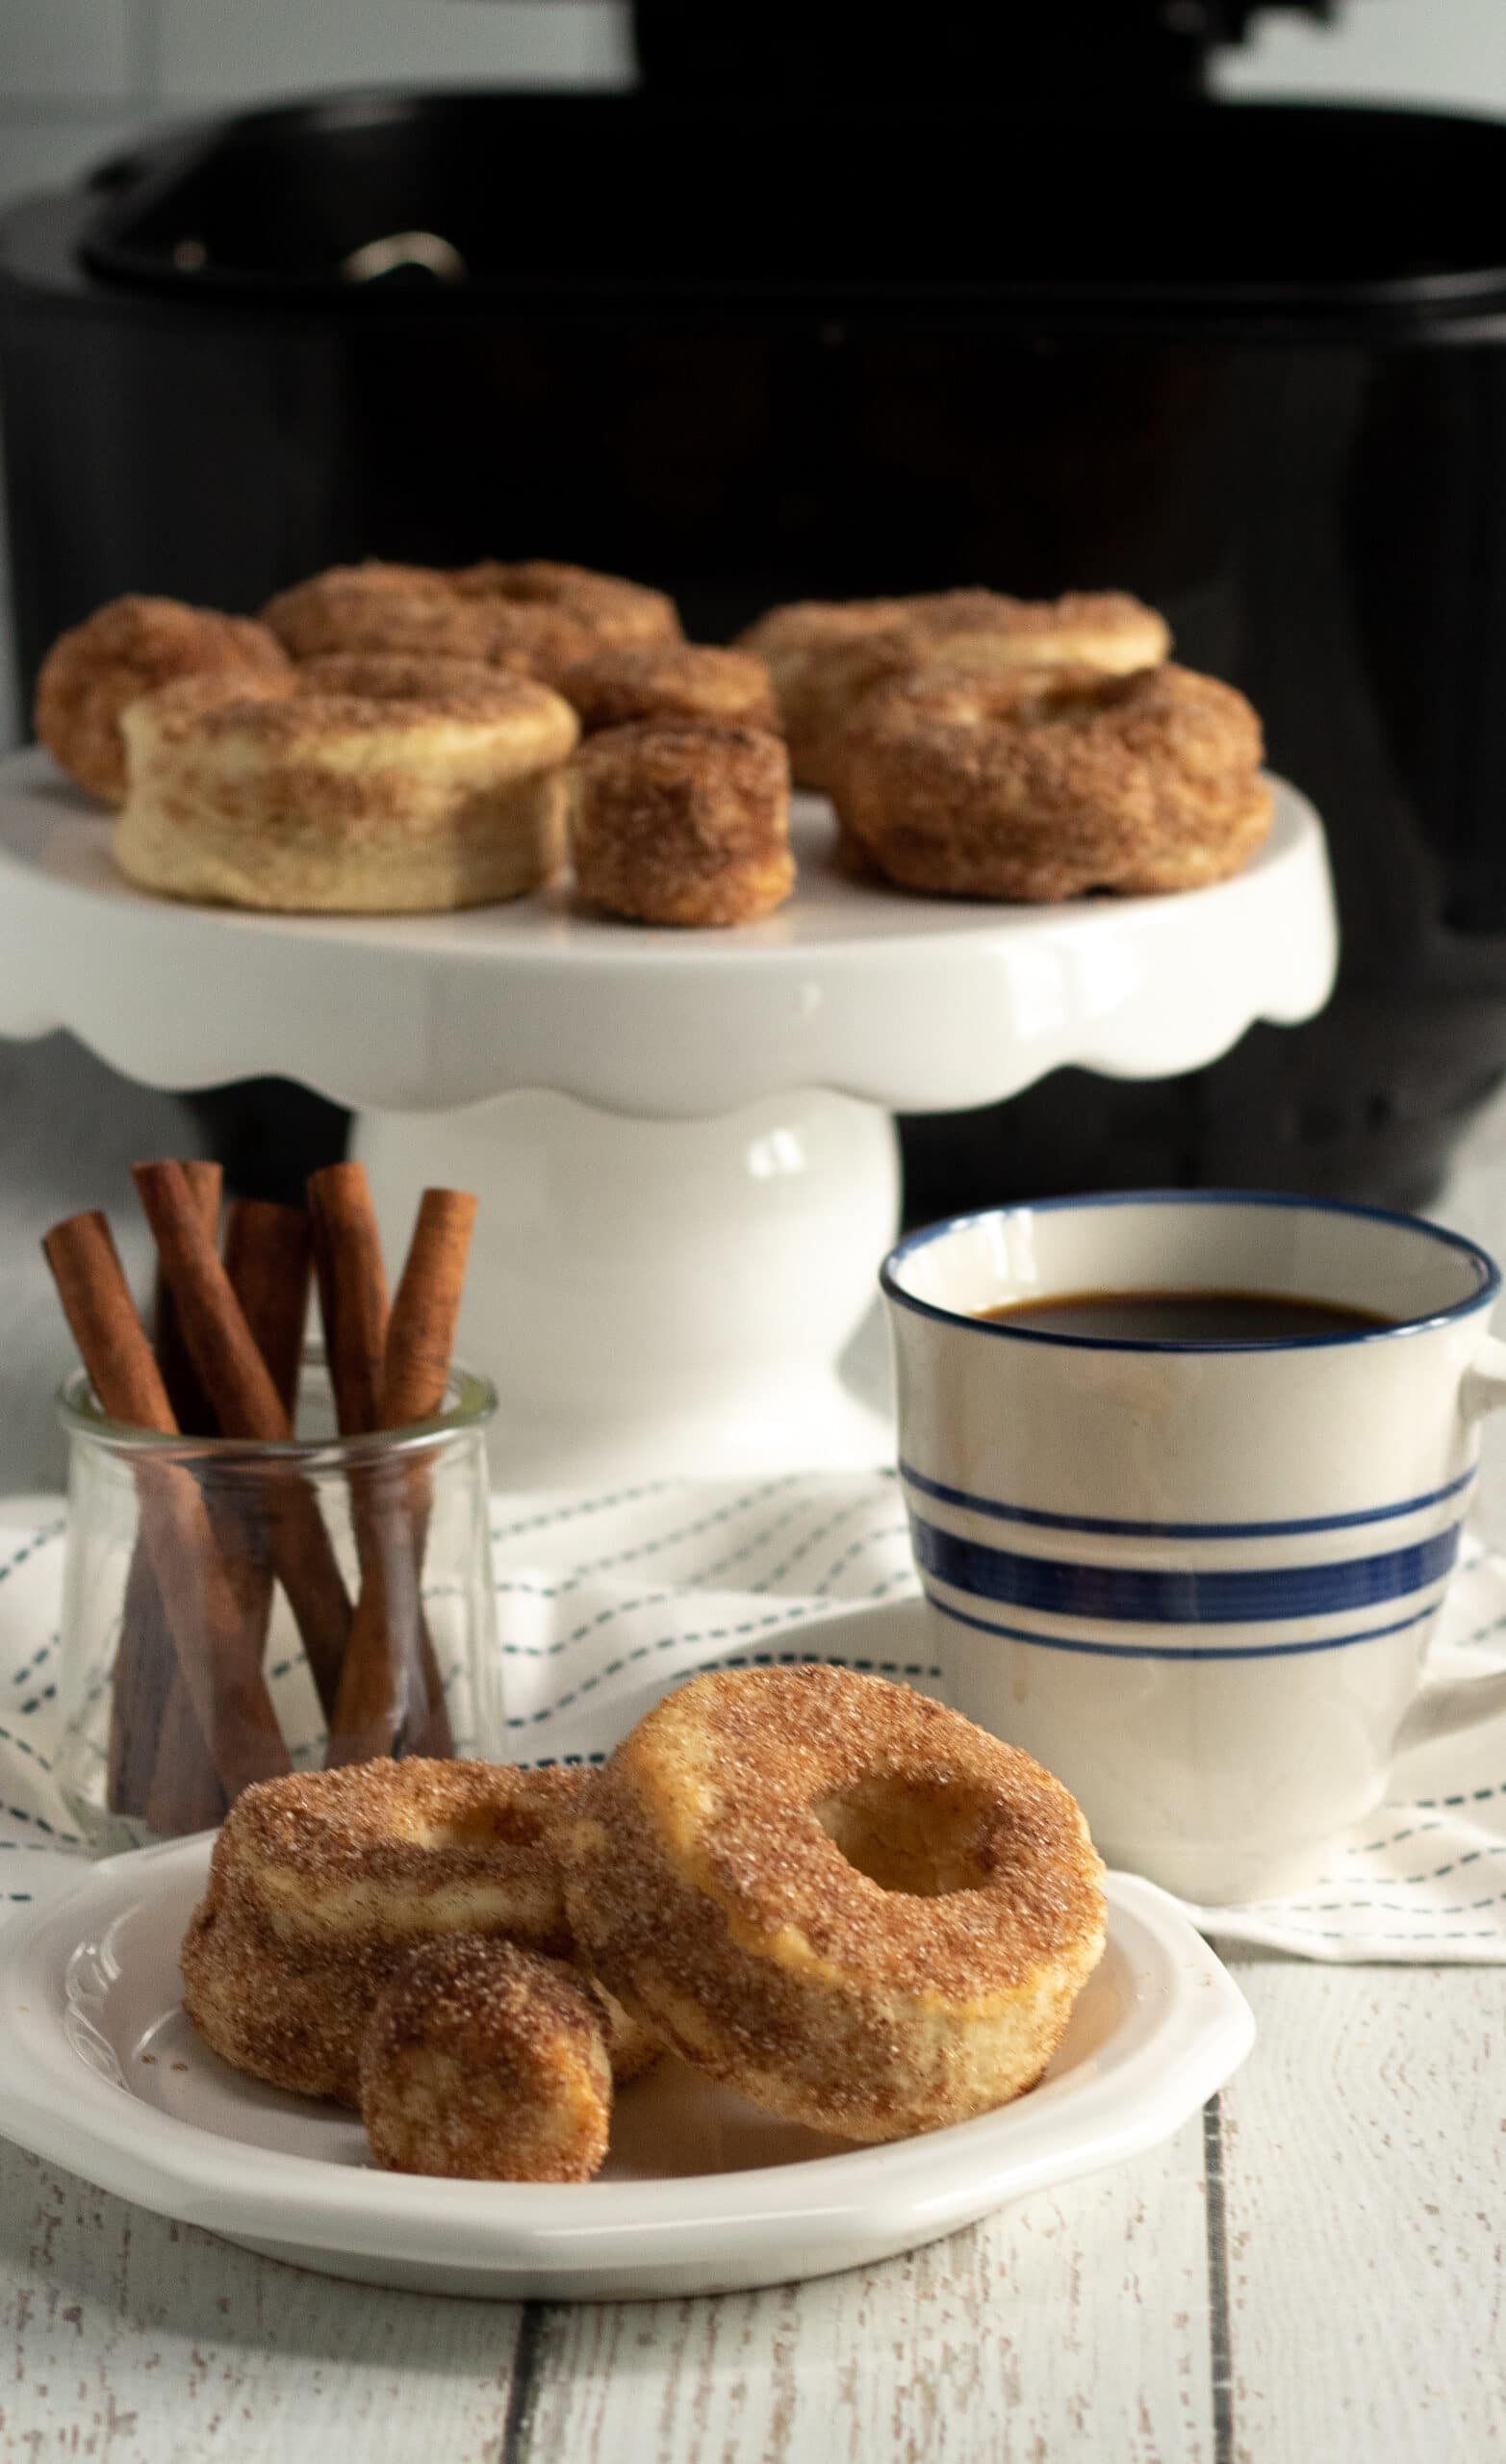 . Air Fyrer Pumpkin Spice Donuts RecipeFill your home with the smell of freshly made Air Fryer Pumpkin Spice Donuts, perfect for this beautiful fall weather we are having. These easy to make Pumpkin Spice Donuts have a crisp outer coating yet they so soft fluffy inside, enjoy them with a healthy coating of cinnamon sugar, or your favorite glaze.